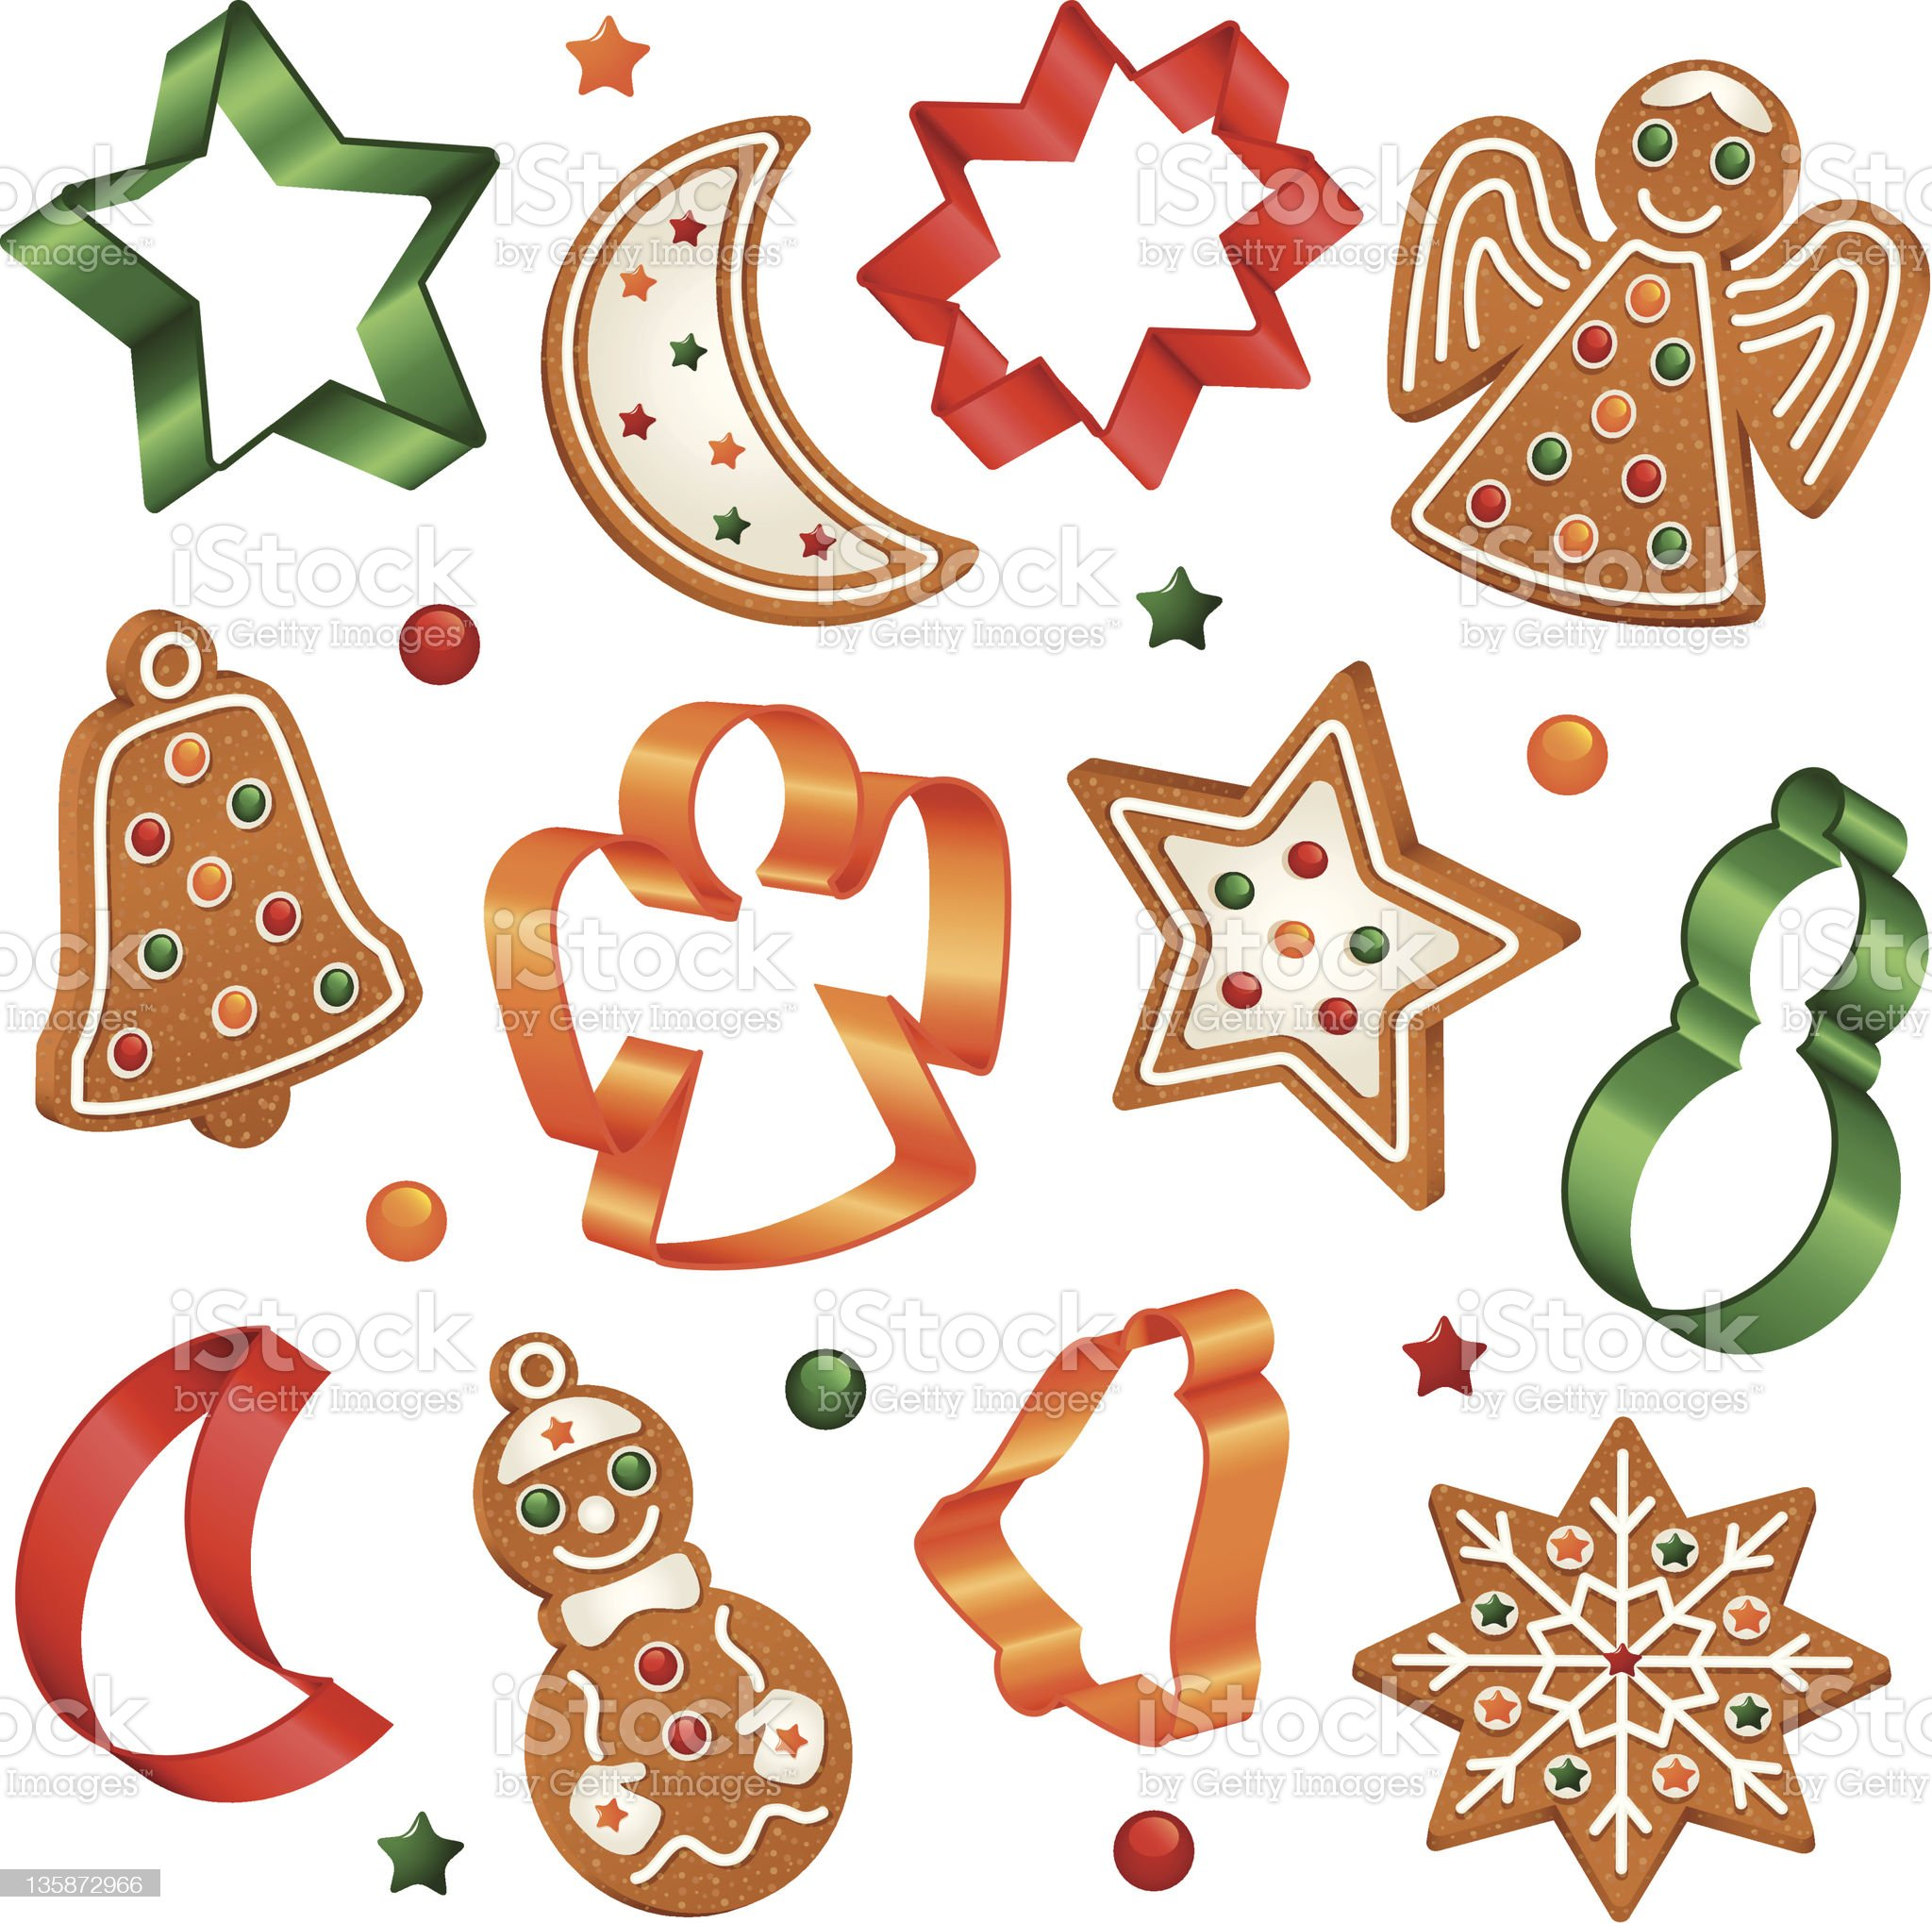 Christmas cookies and cookie cutters royalty-free stock vector art